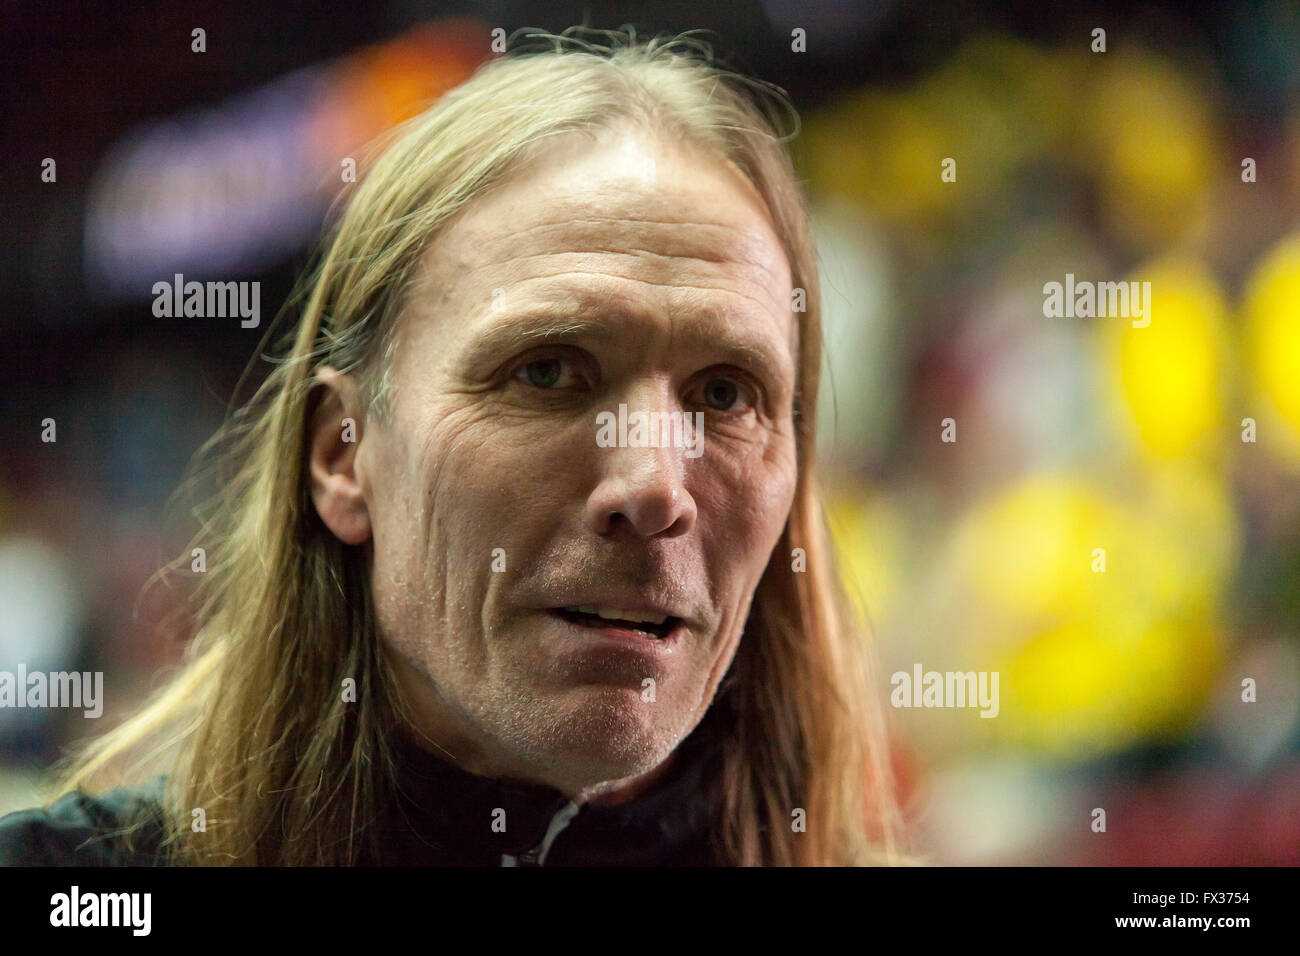 handball coach stock photos & handball coach stock images - alamy